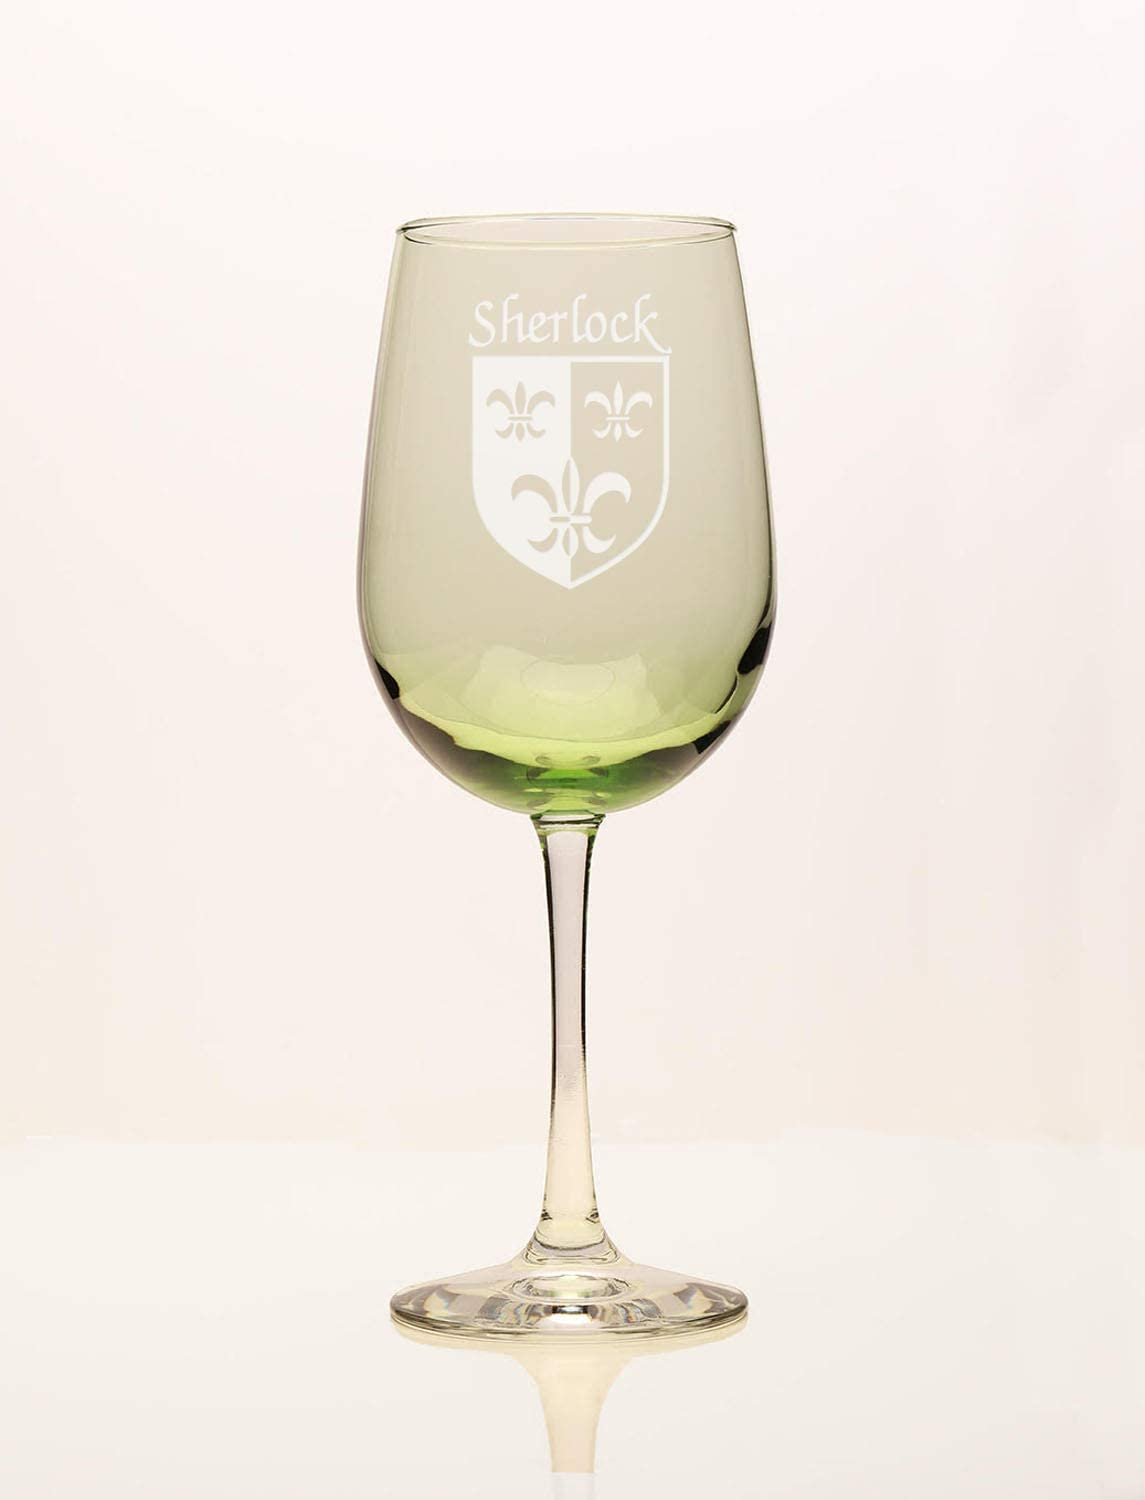 Sherlock Irish Coat of Online limited Max 54% OFF product Green Wine Arms Glass